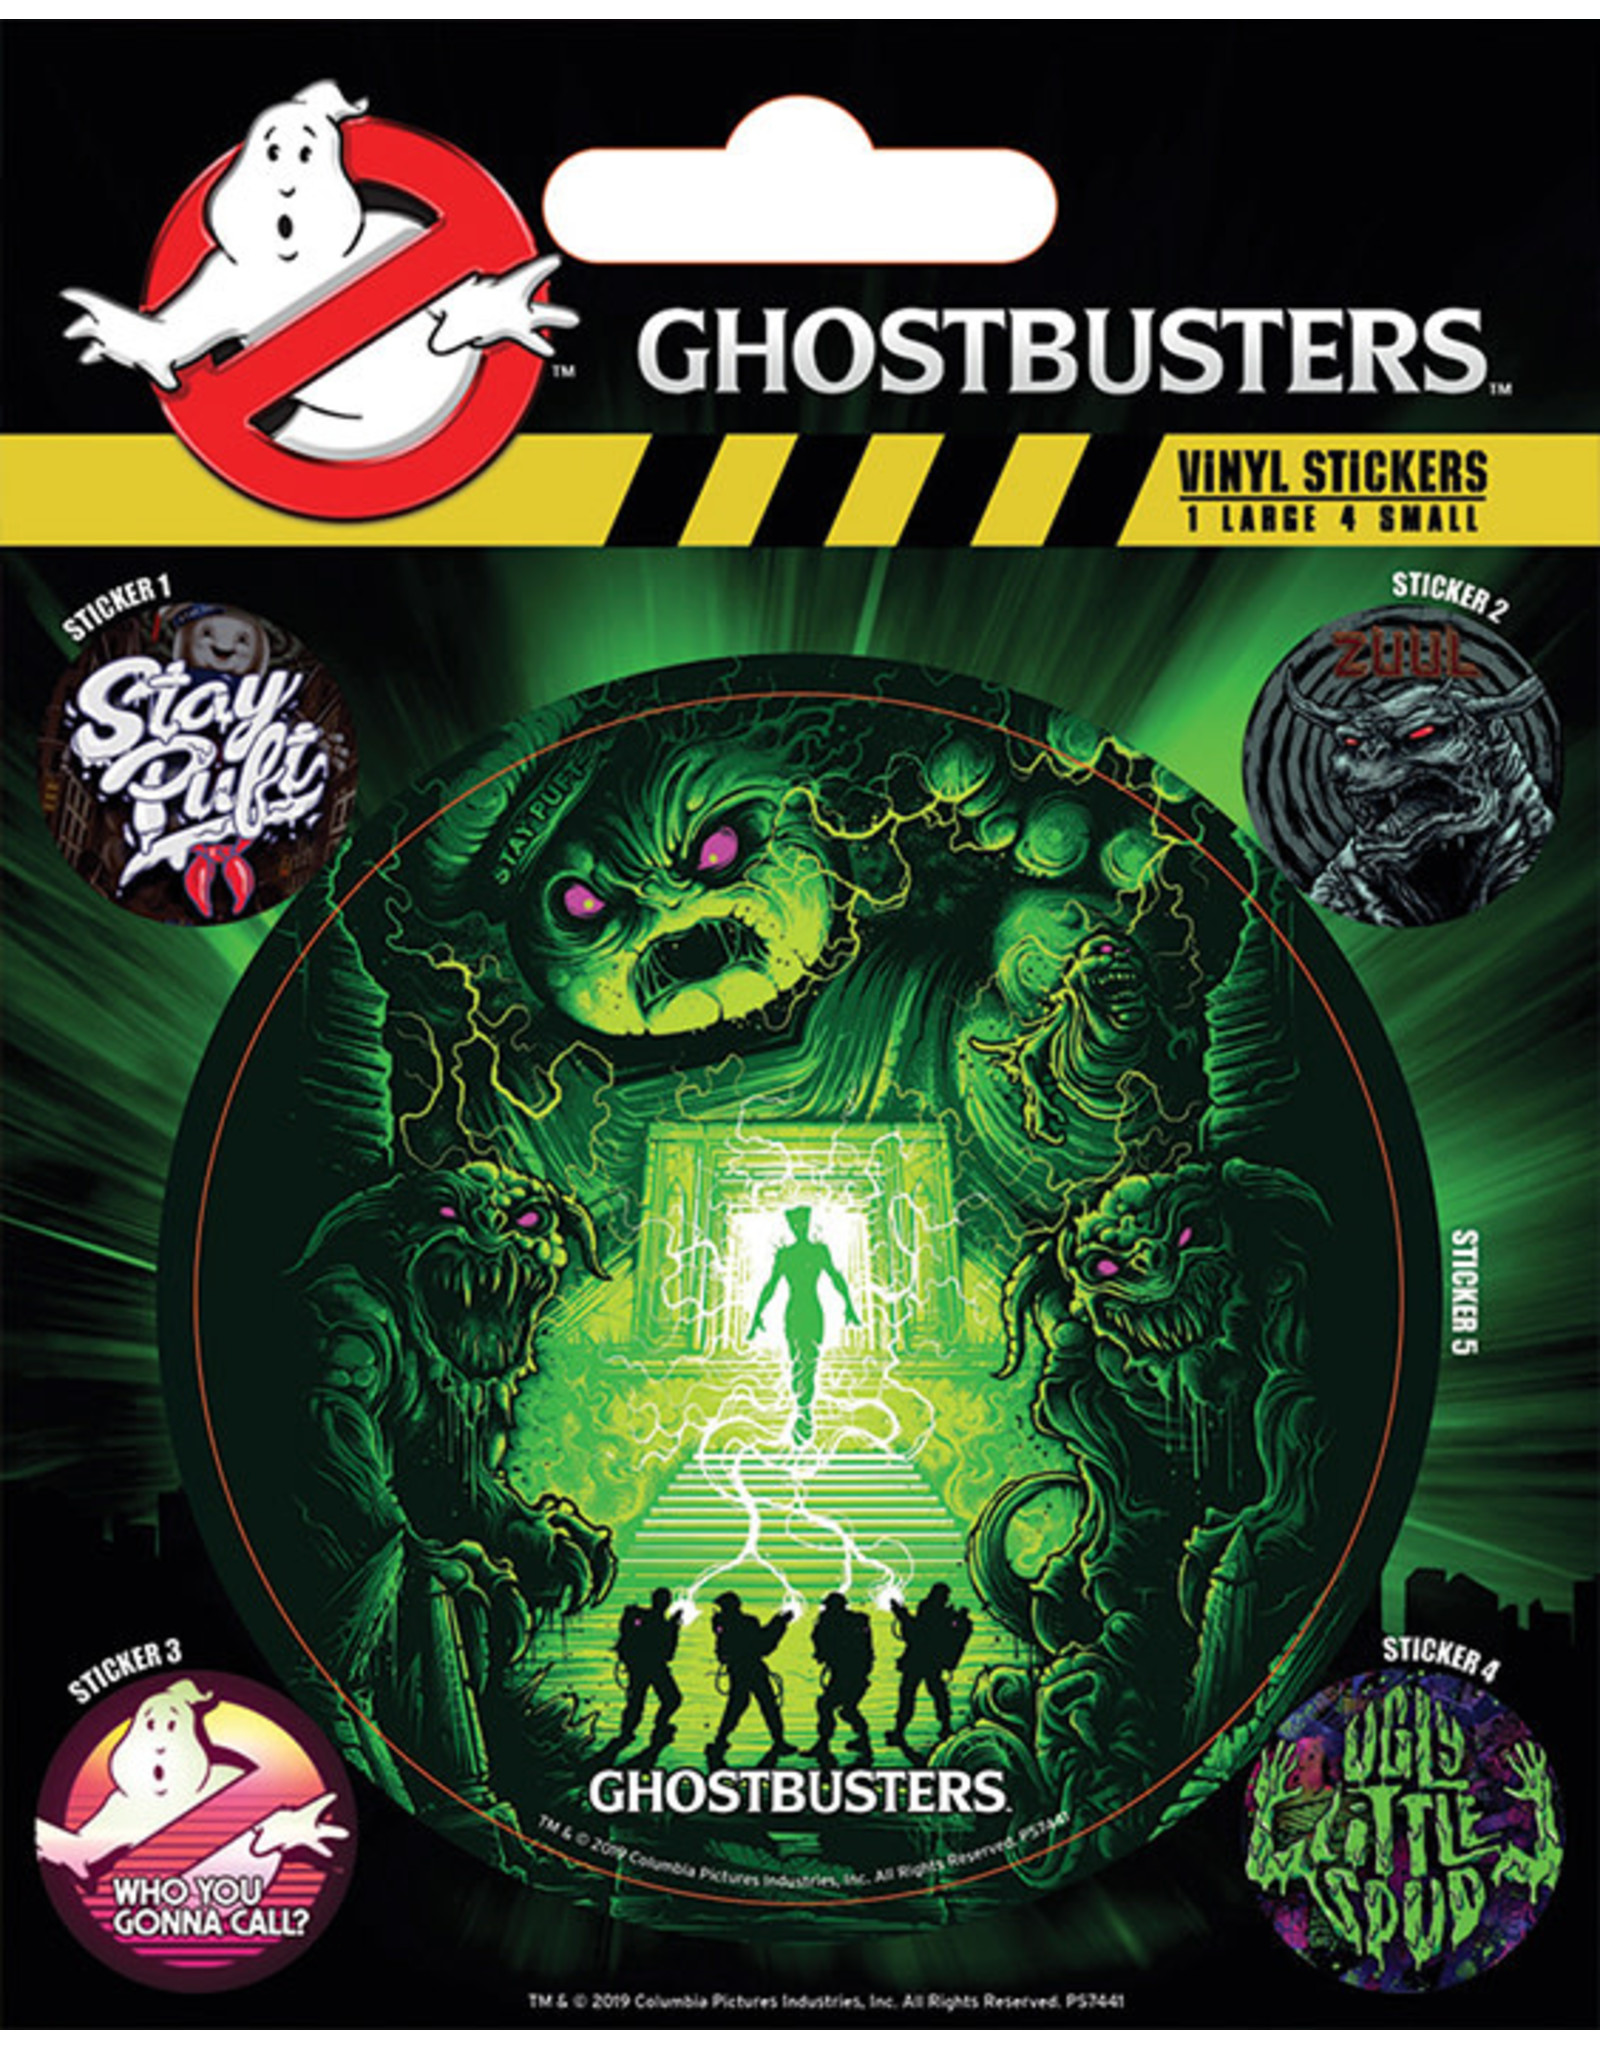 GHOSTBUSTERS - Ghosts and Ghouls - Vinyl Stickers